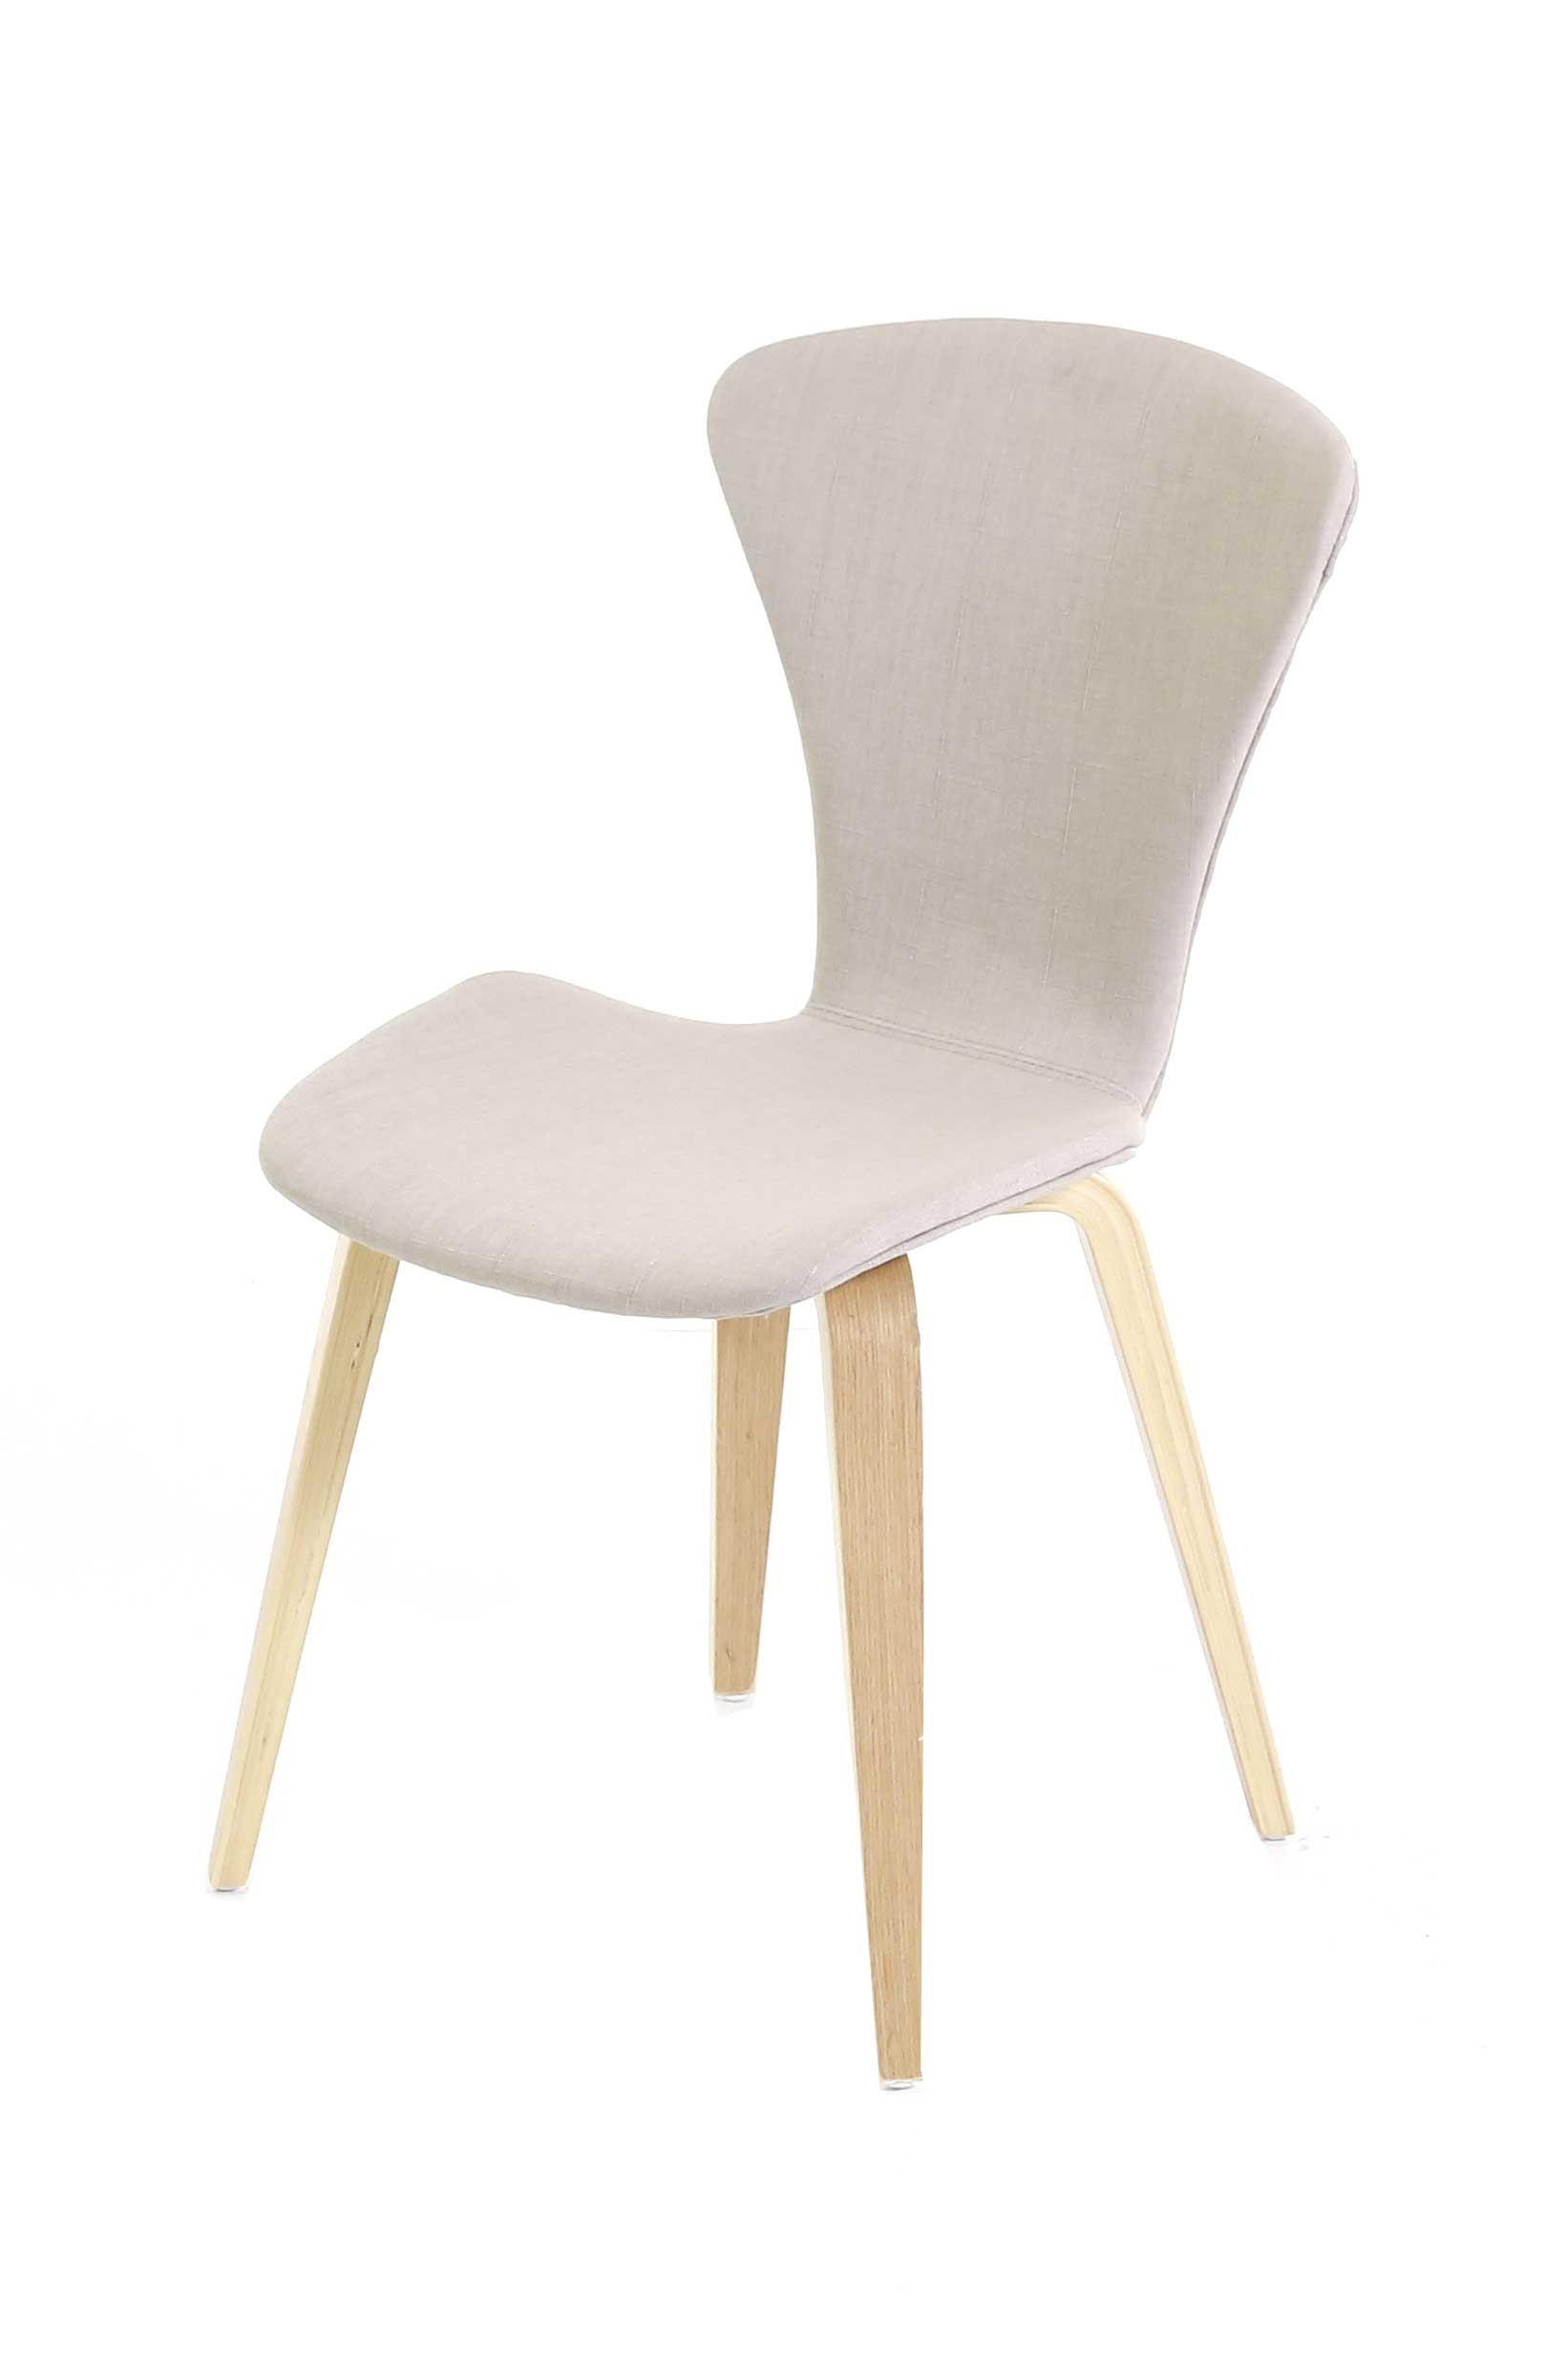 Chaise for Chaise d implantation